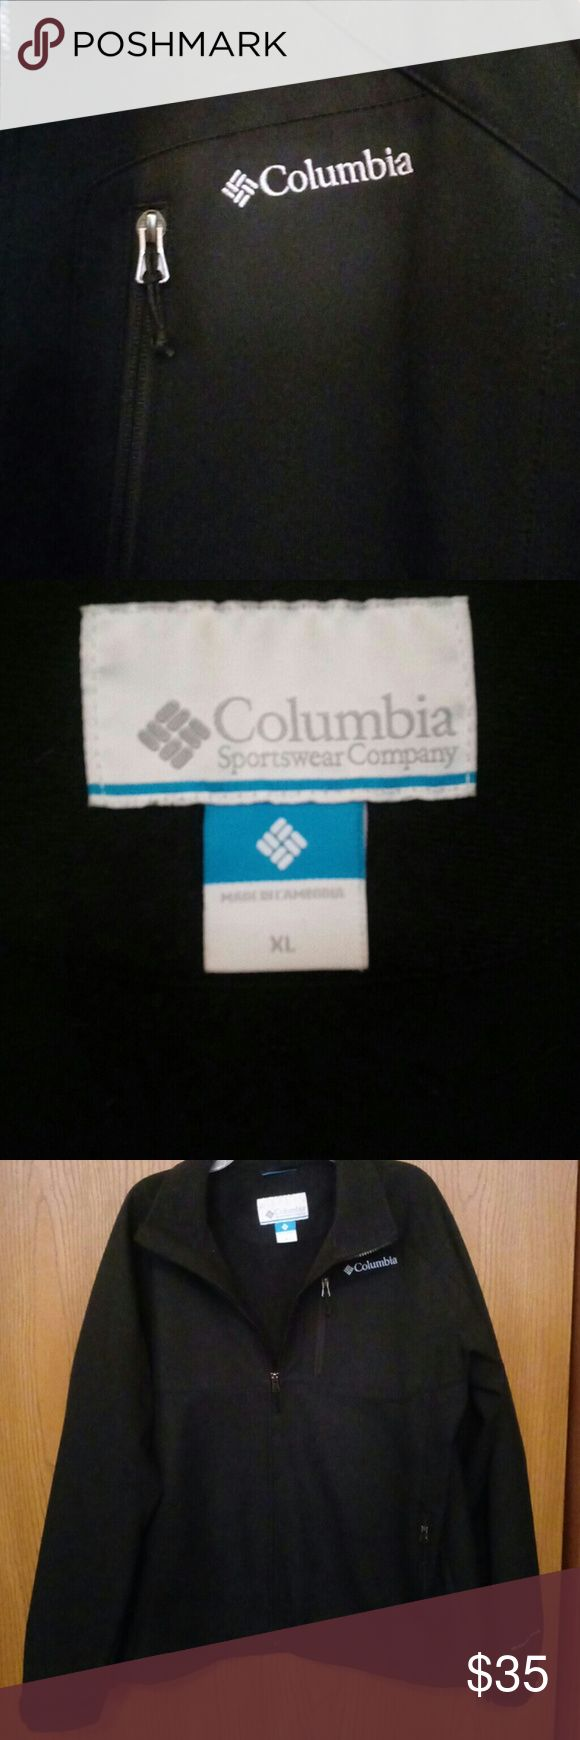 Men's Columbia Sportswear Company XL Jacket Only worn a few times men's jacket that looks lile it just came out of the store. No stains just a little bit of snagging underneath the columbia jacket which you can only feel and barley see. Columbia Jackets & Coats